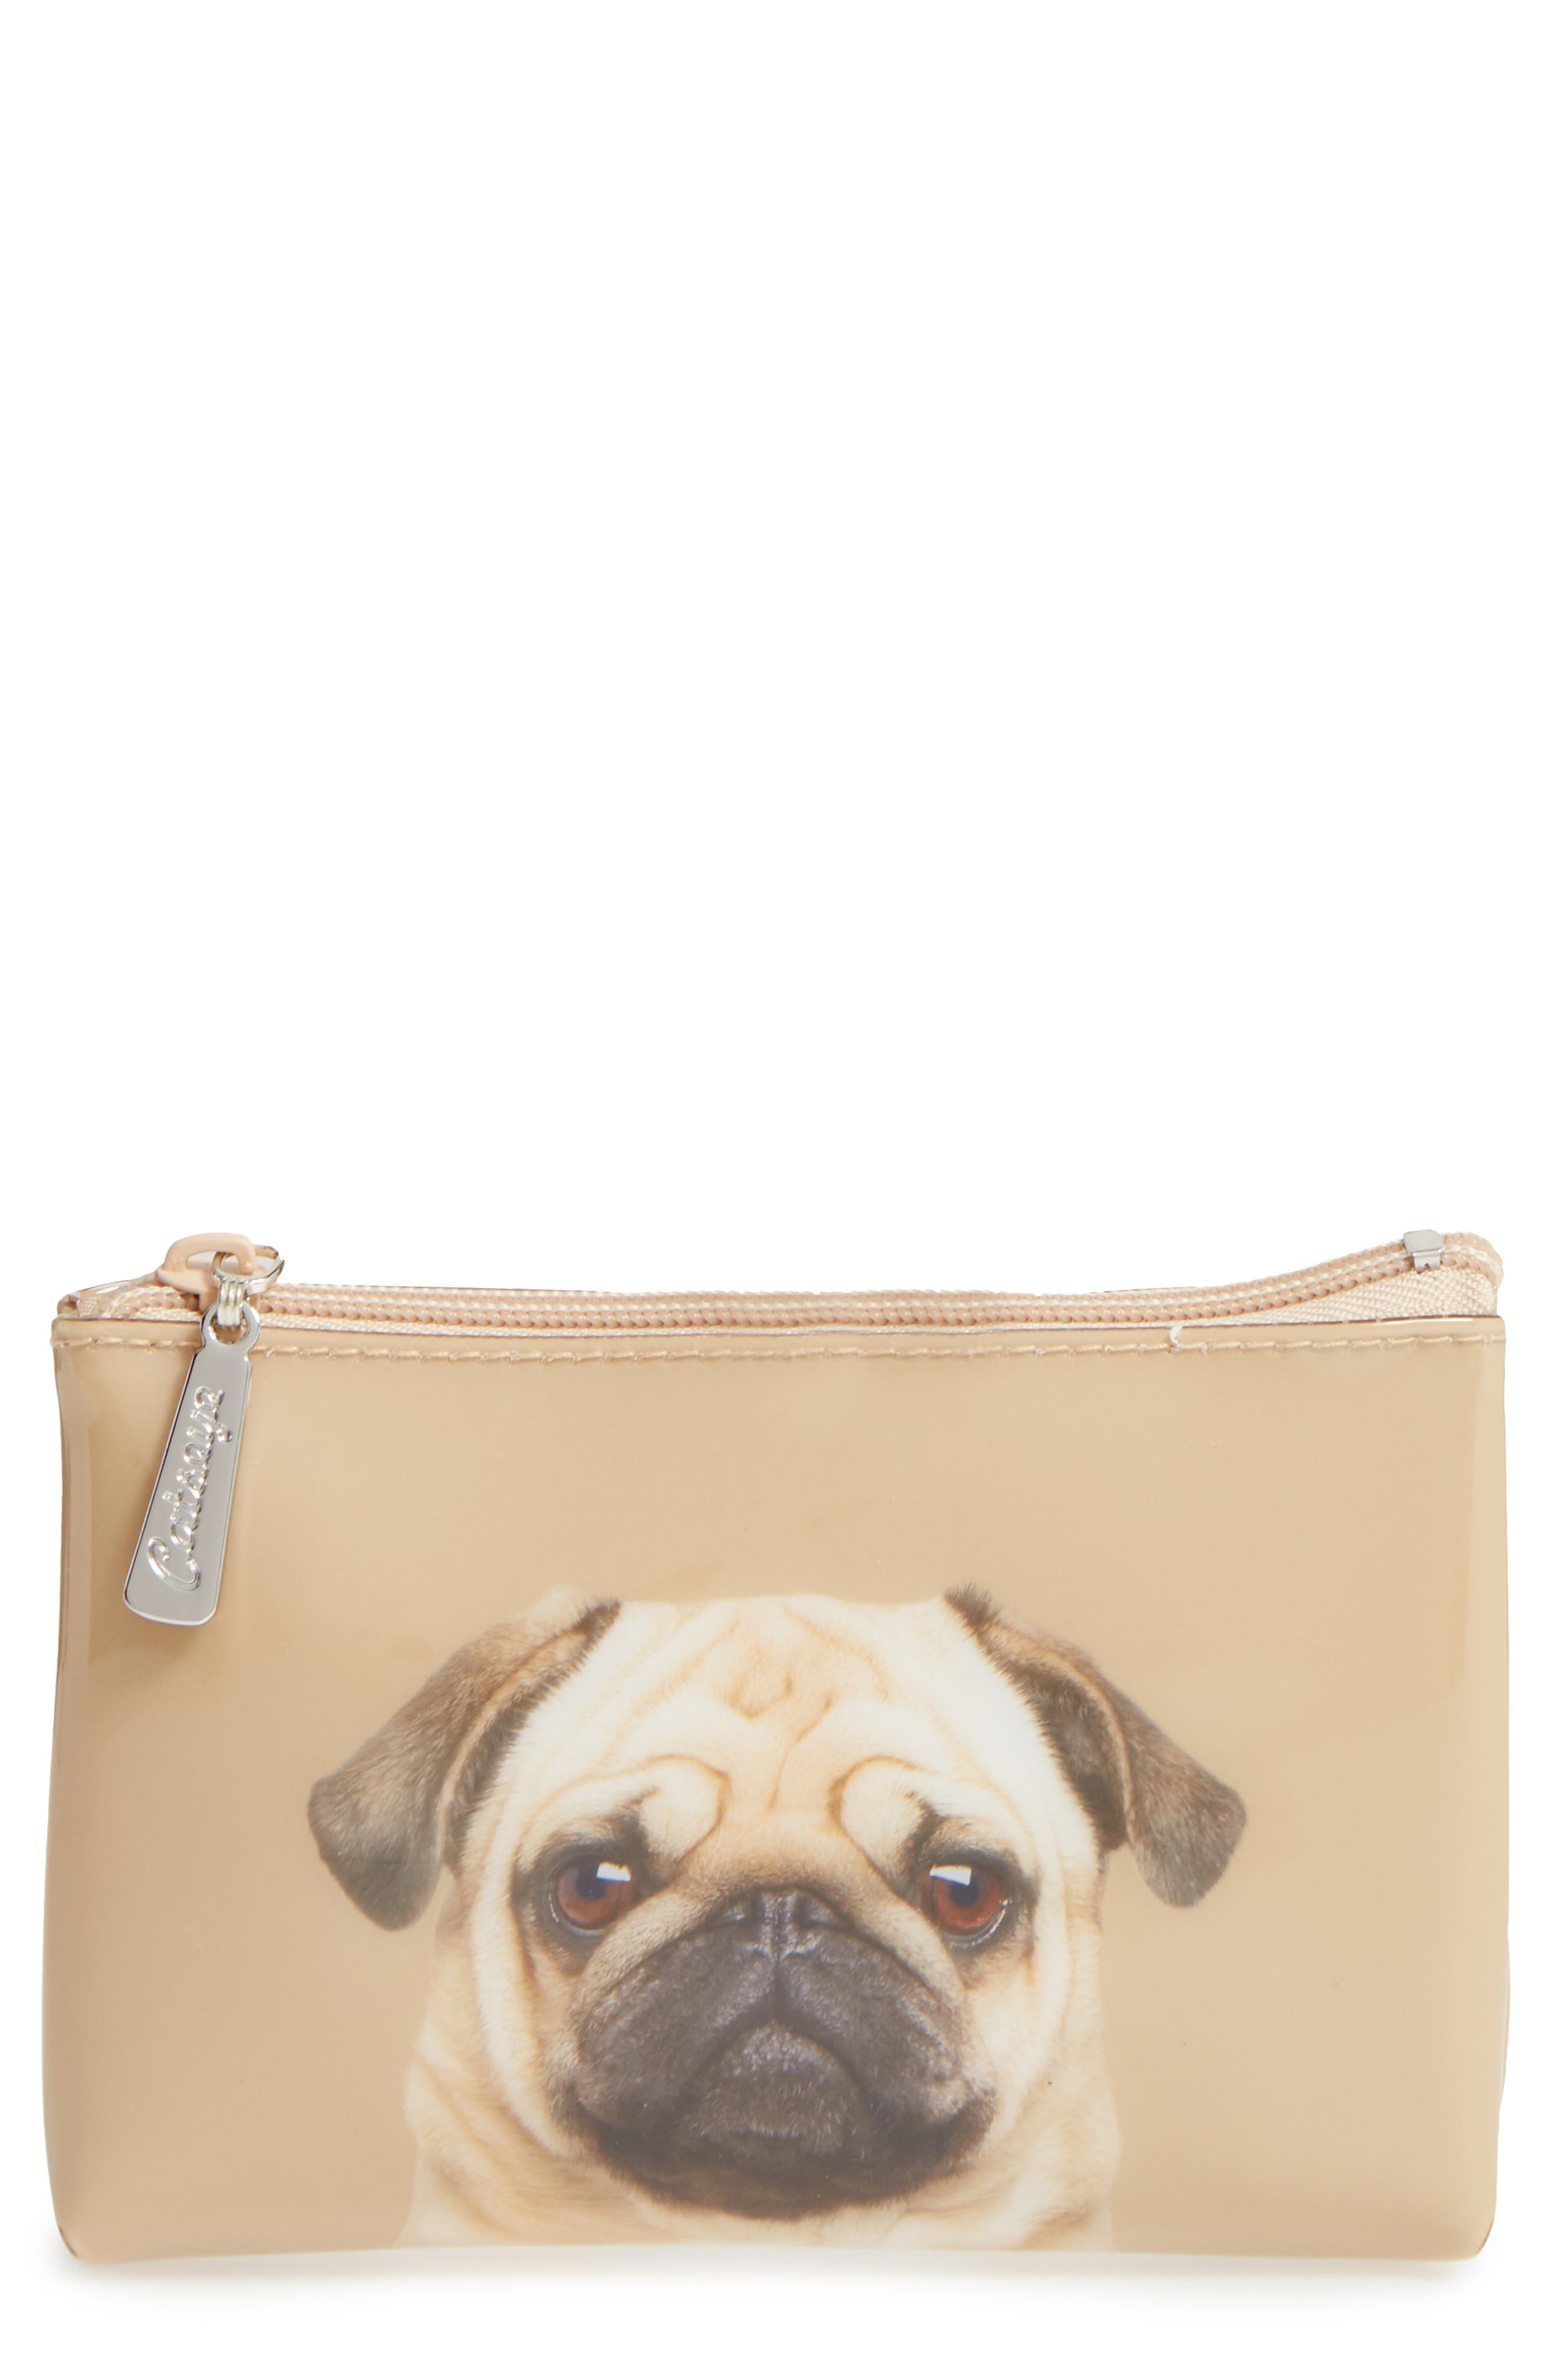 Caramel Pug Small Zip Pouch,                         Main,                         color, 200